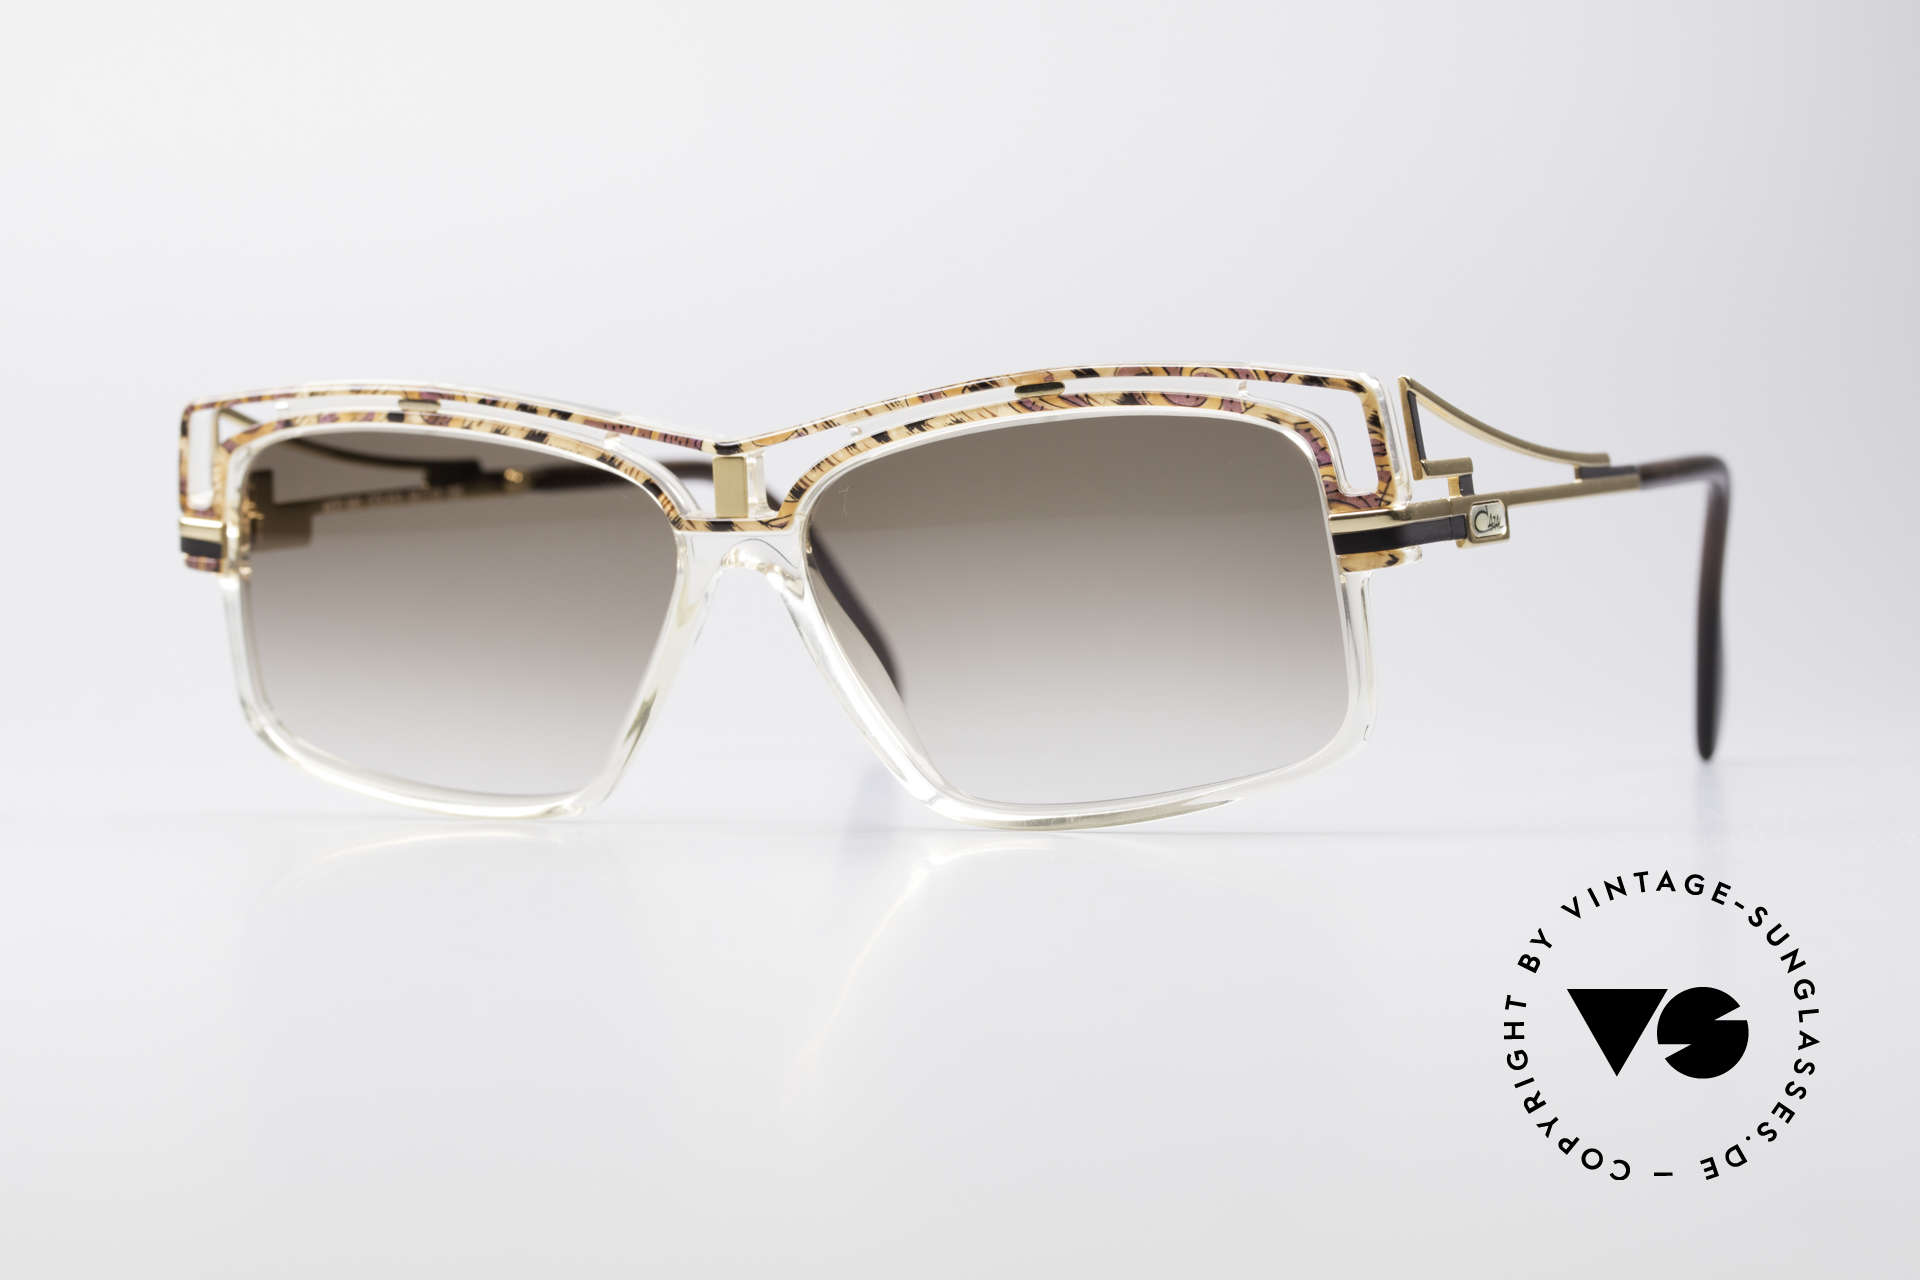 Cazal 365 Old School No Retro Sunglasses, striking CAZAL vintage sunglasses from the 1990's, Made for Men and Women